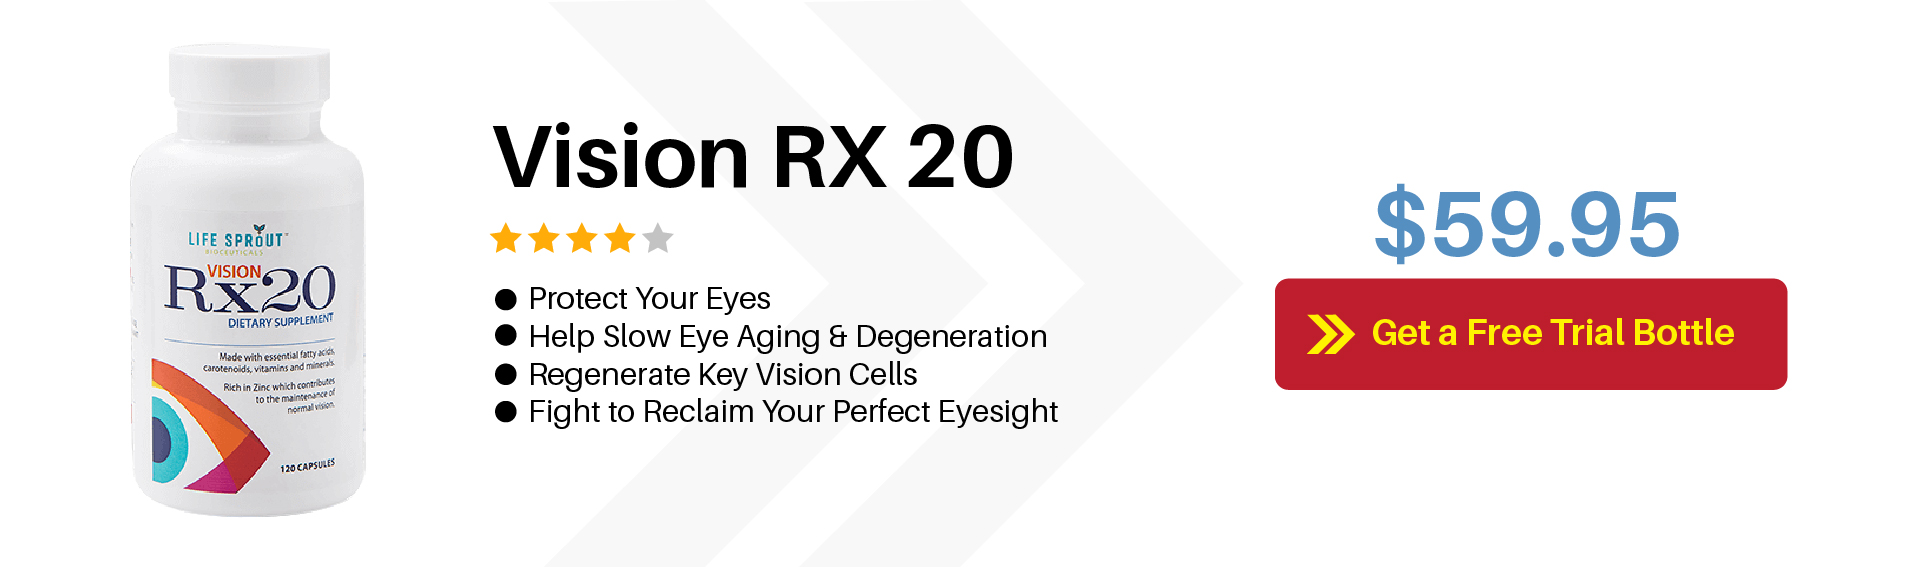 Vision Rx 20 cost